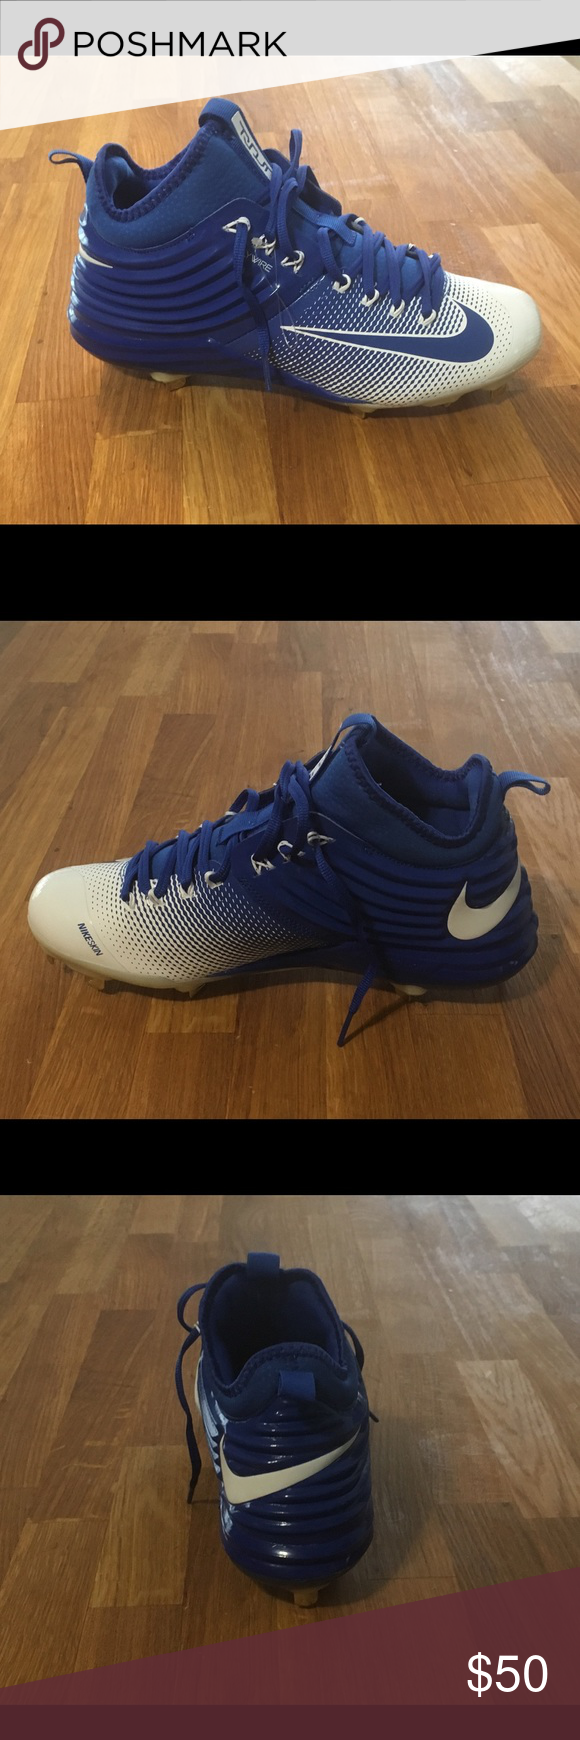 blue and white baseball cleats nike black and white runners